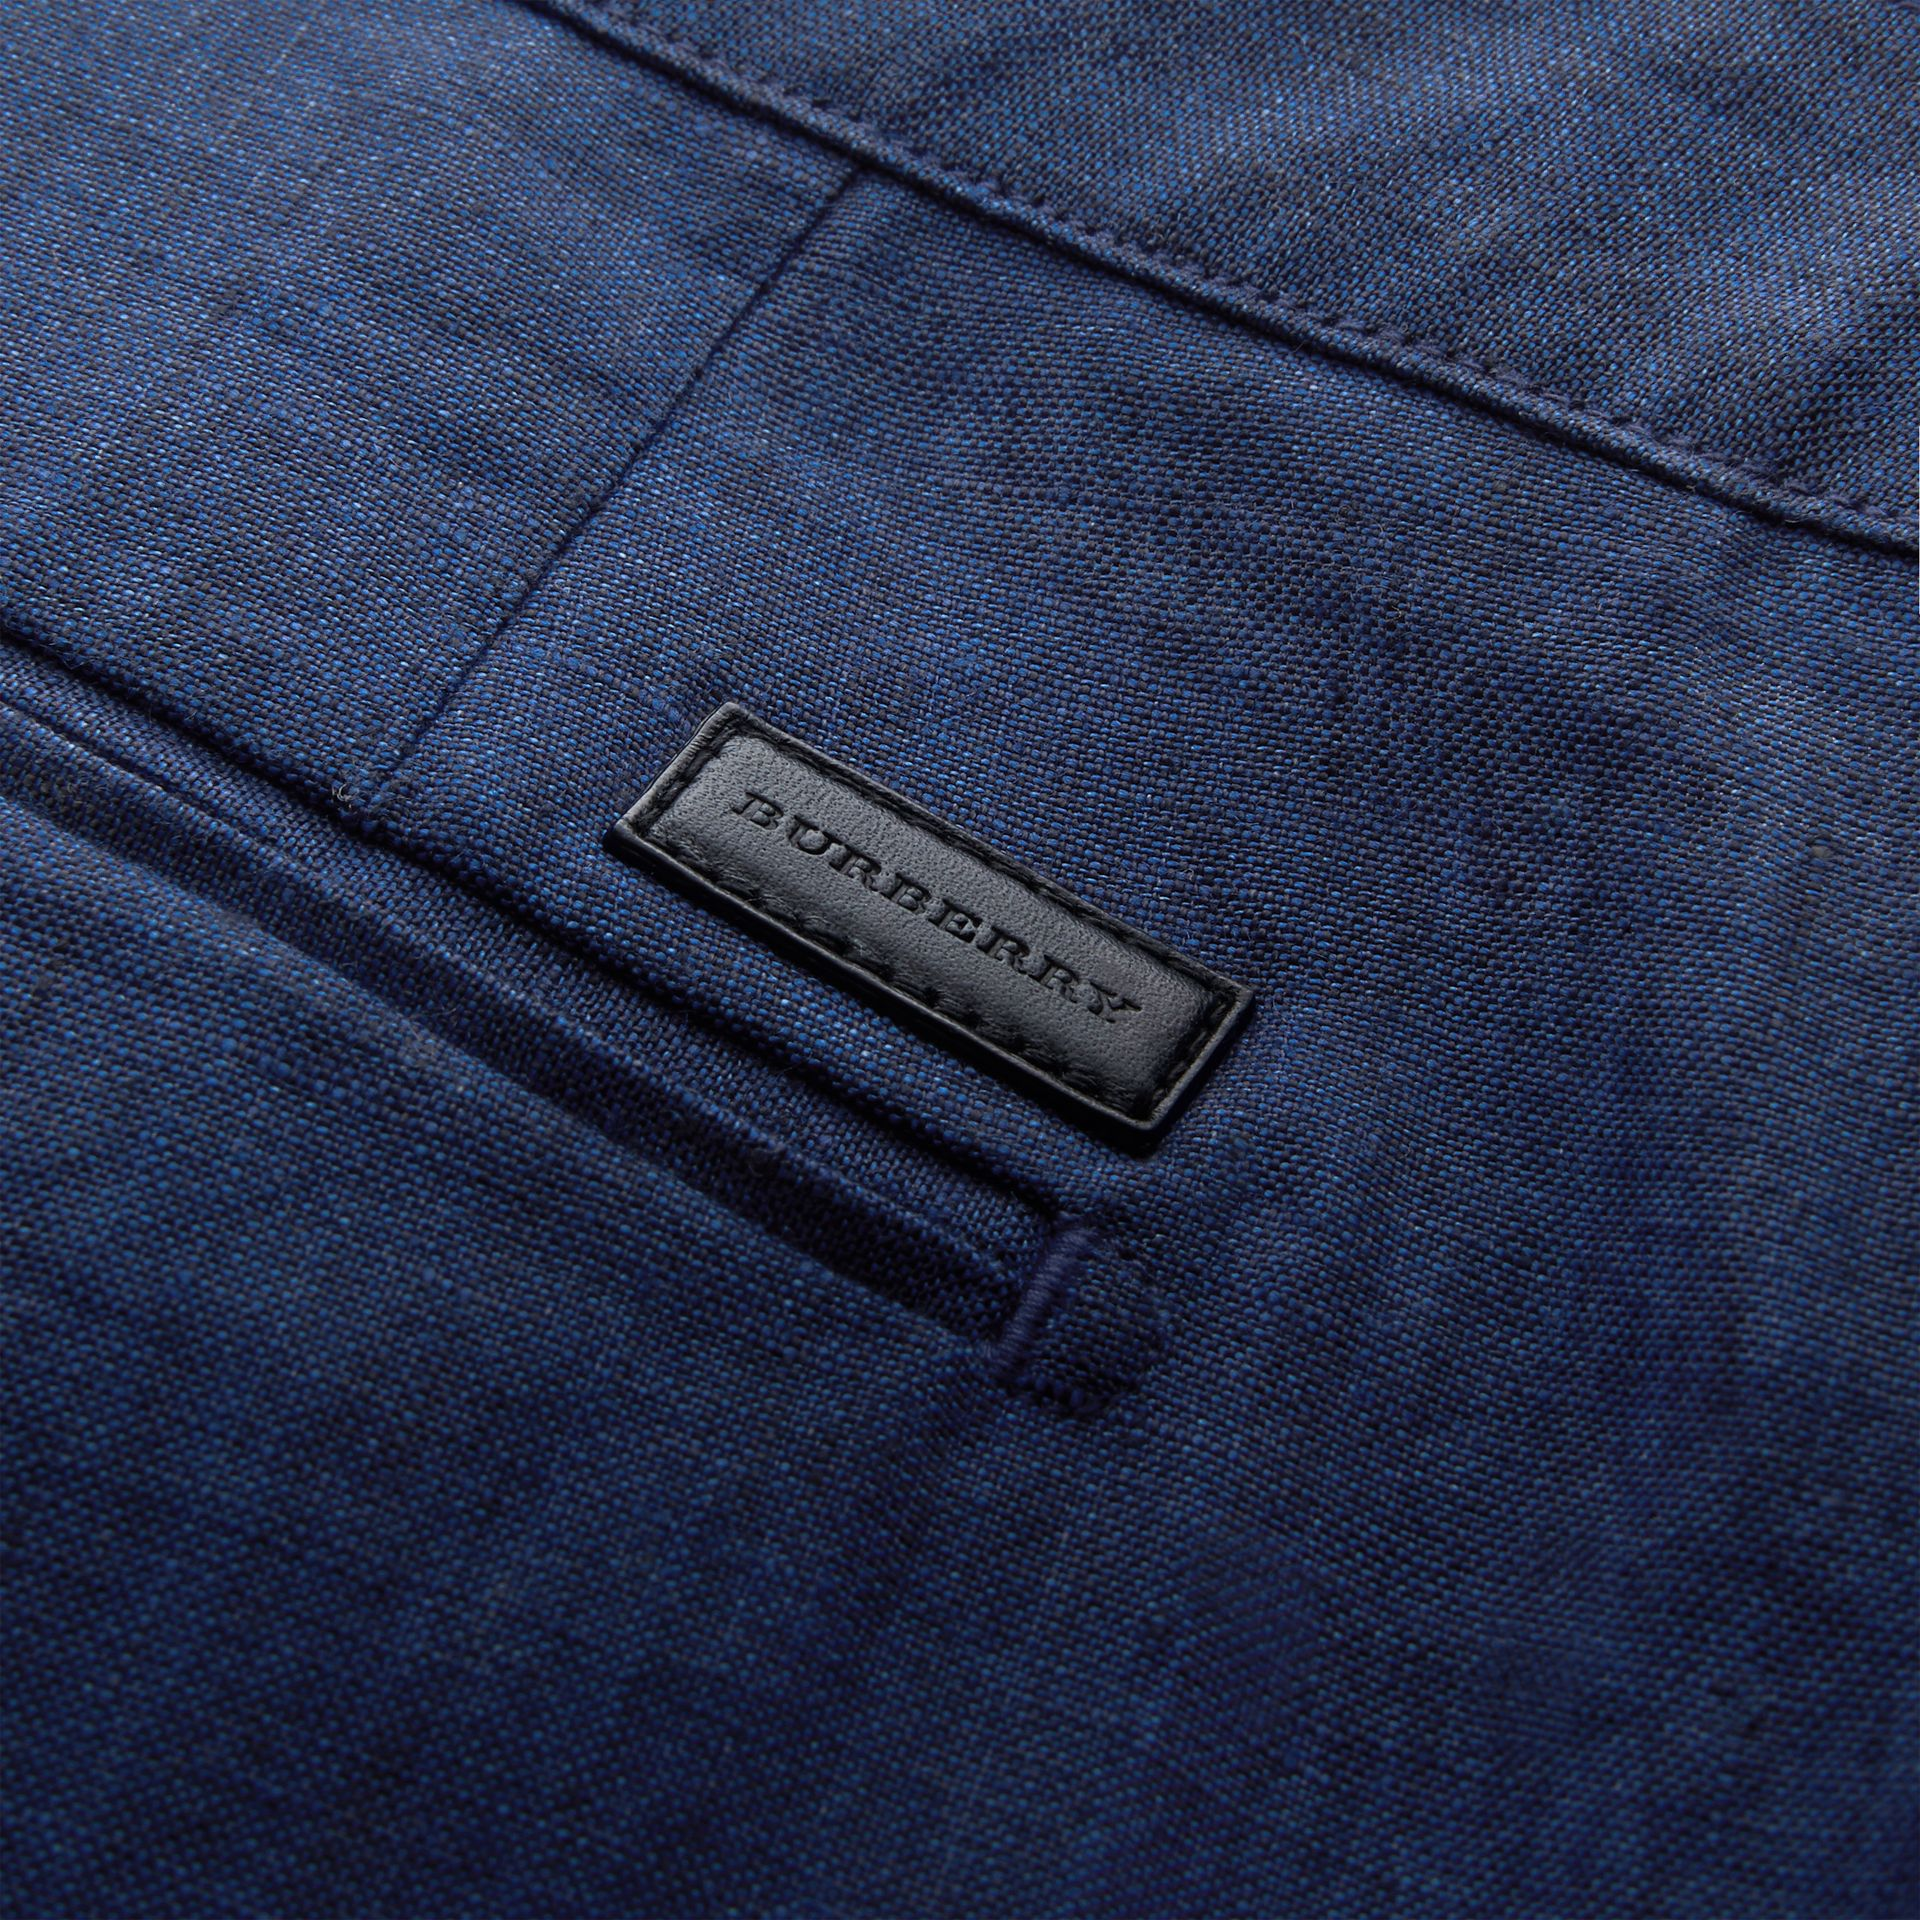 Lightweight Linen Shorts in Steel Blue - Men | Burberry - gallery image 2